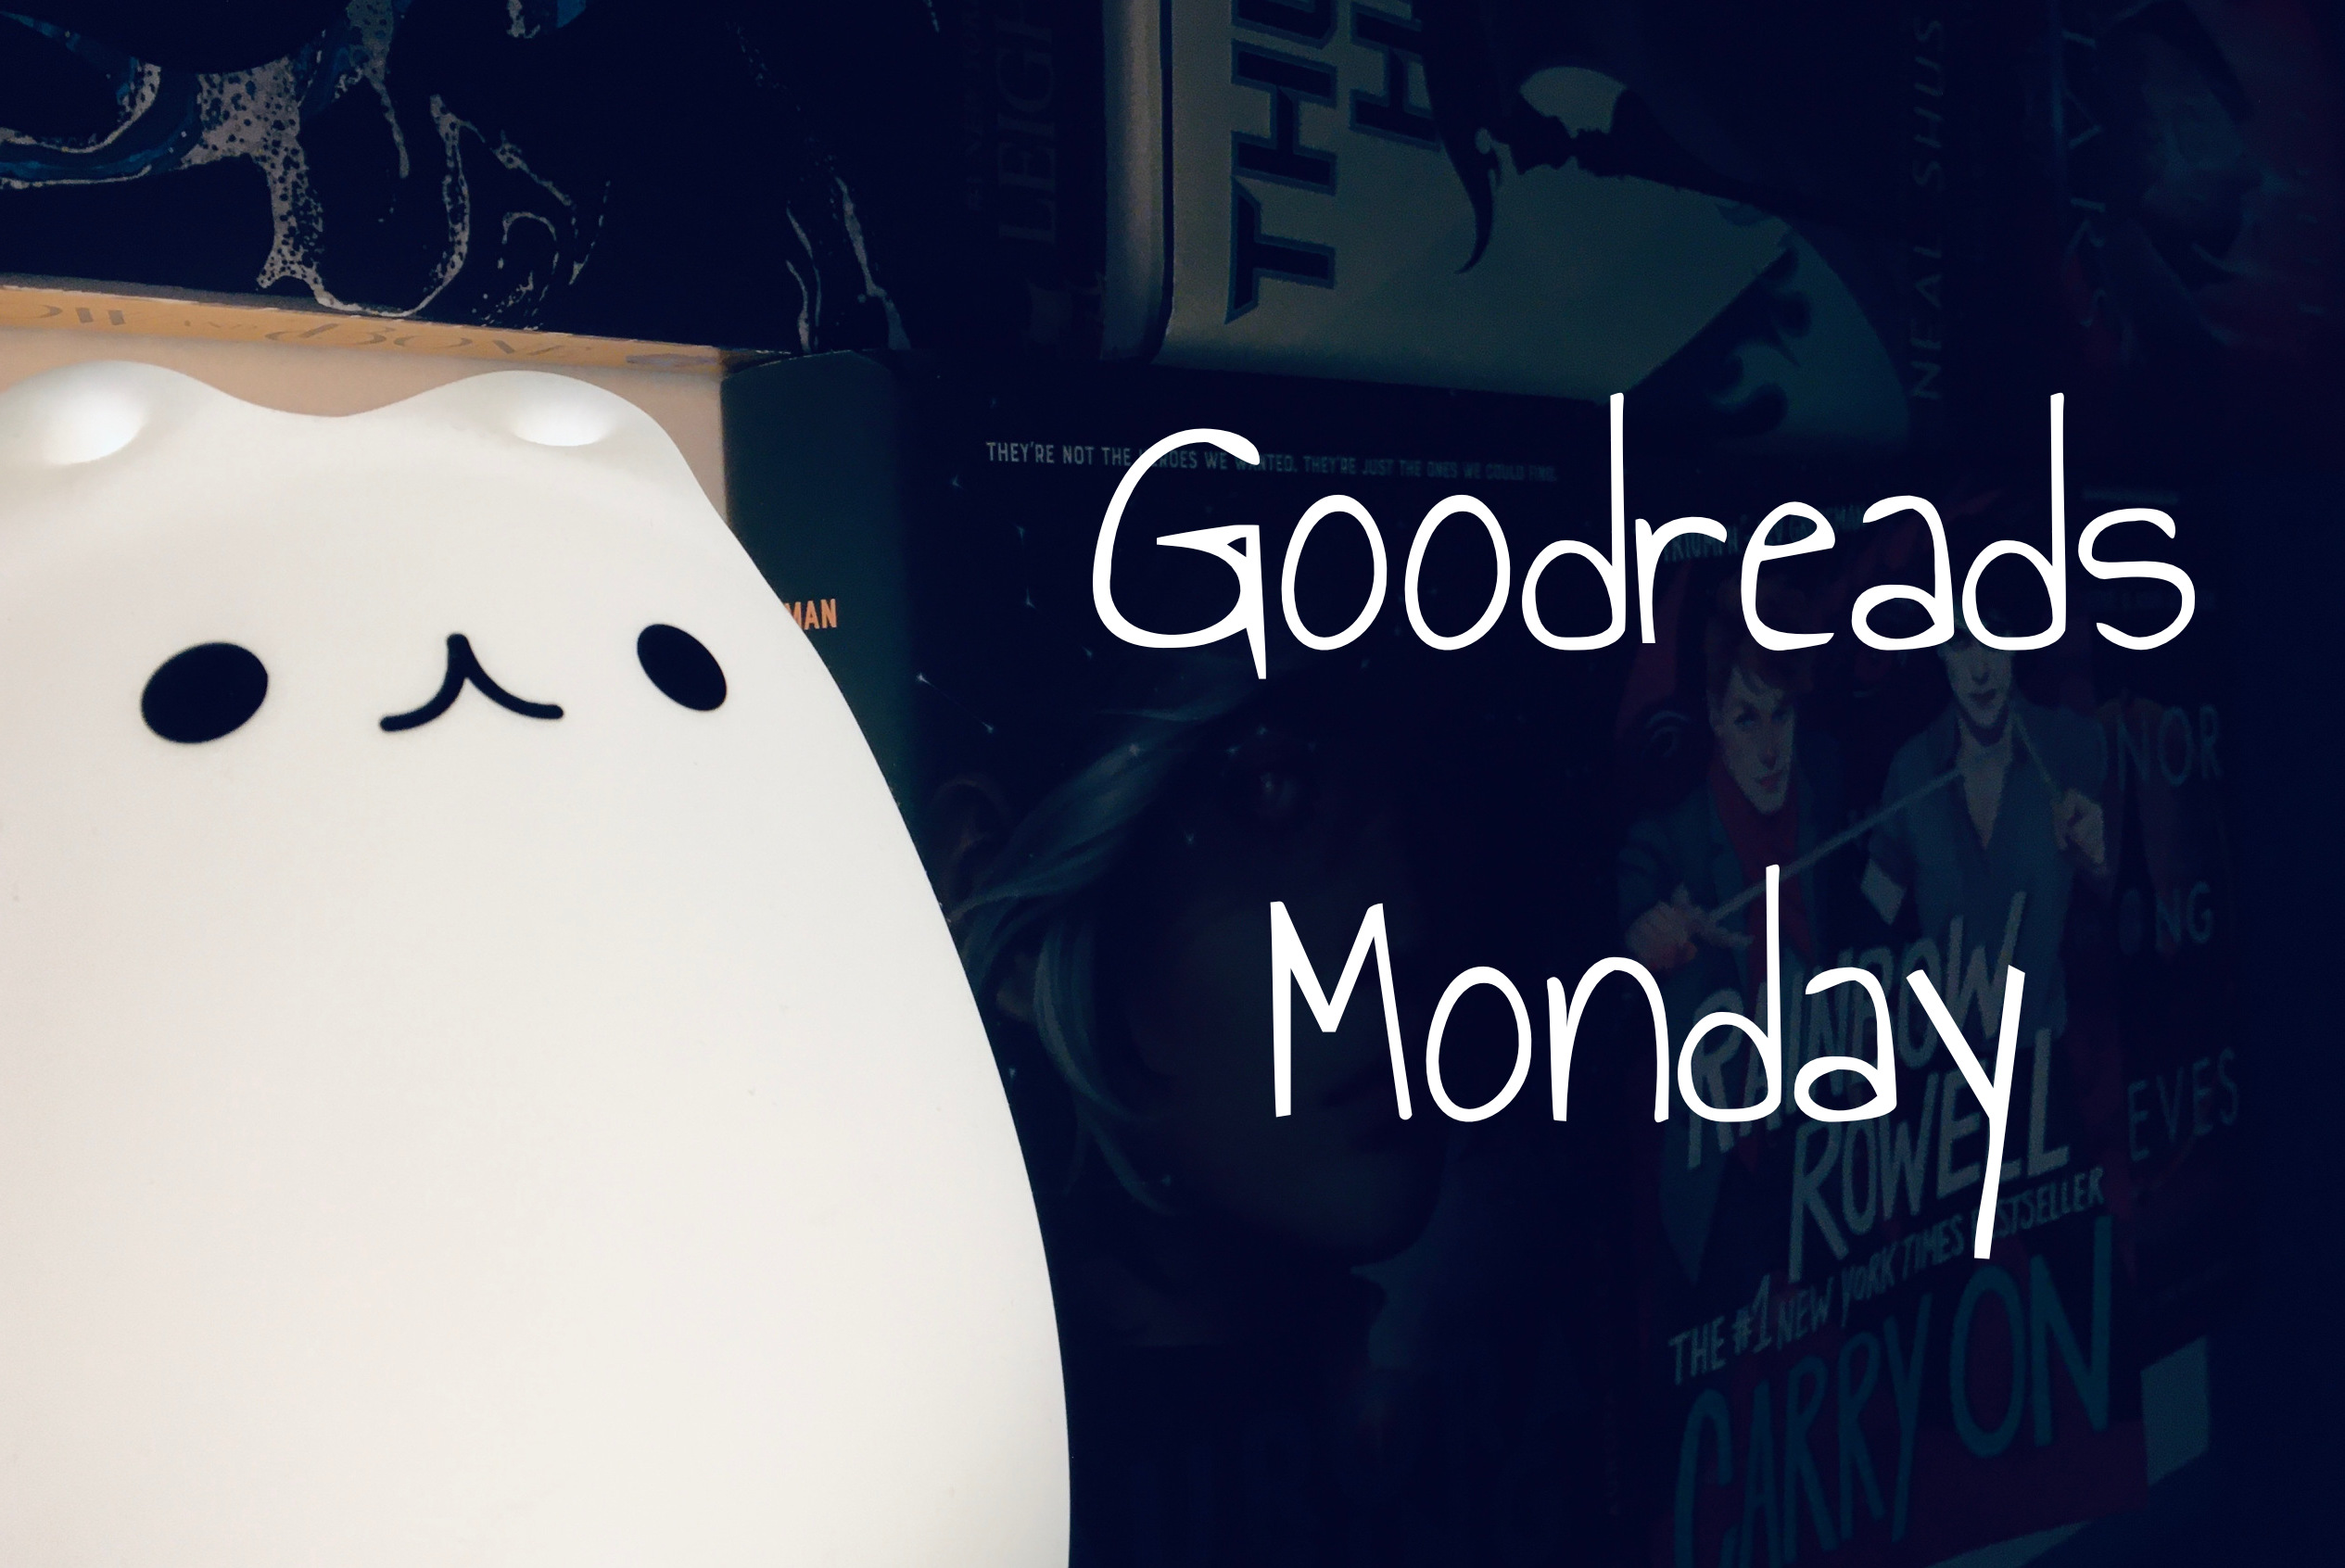 goodreads monday header.jpeg